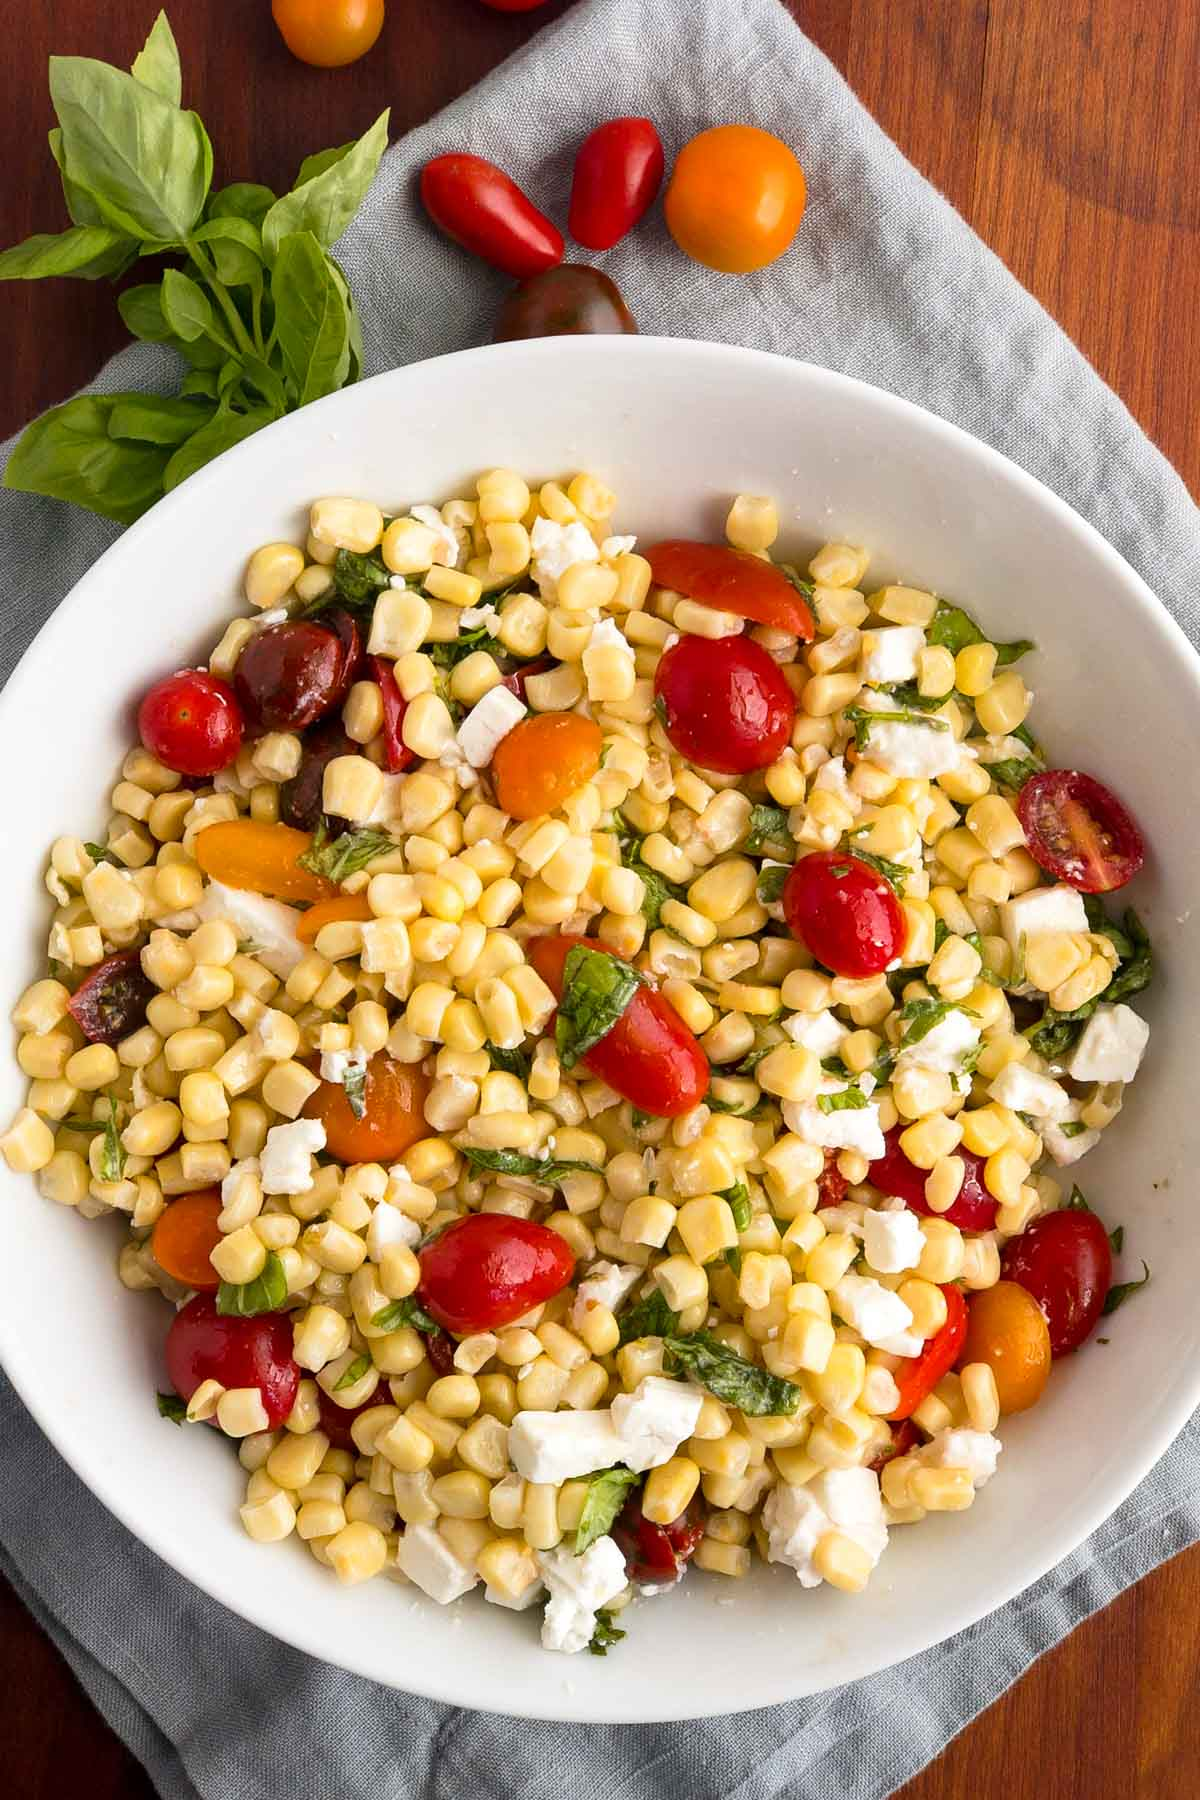 Corn and tomato salad with basil and feta cheese